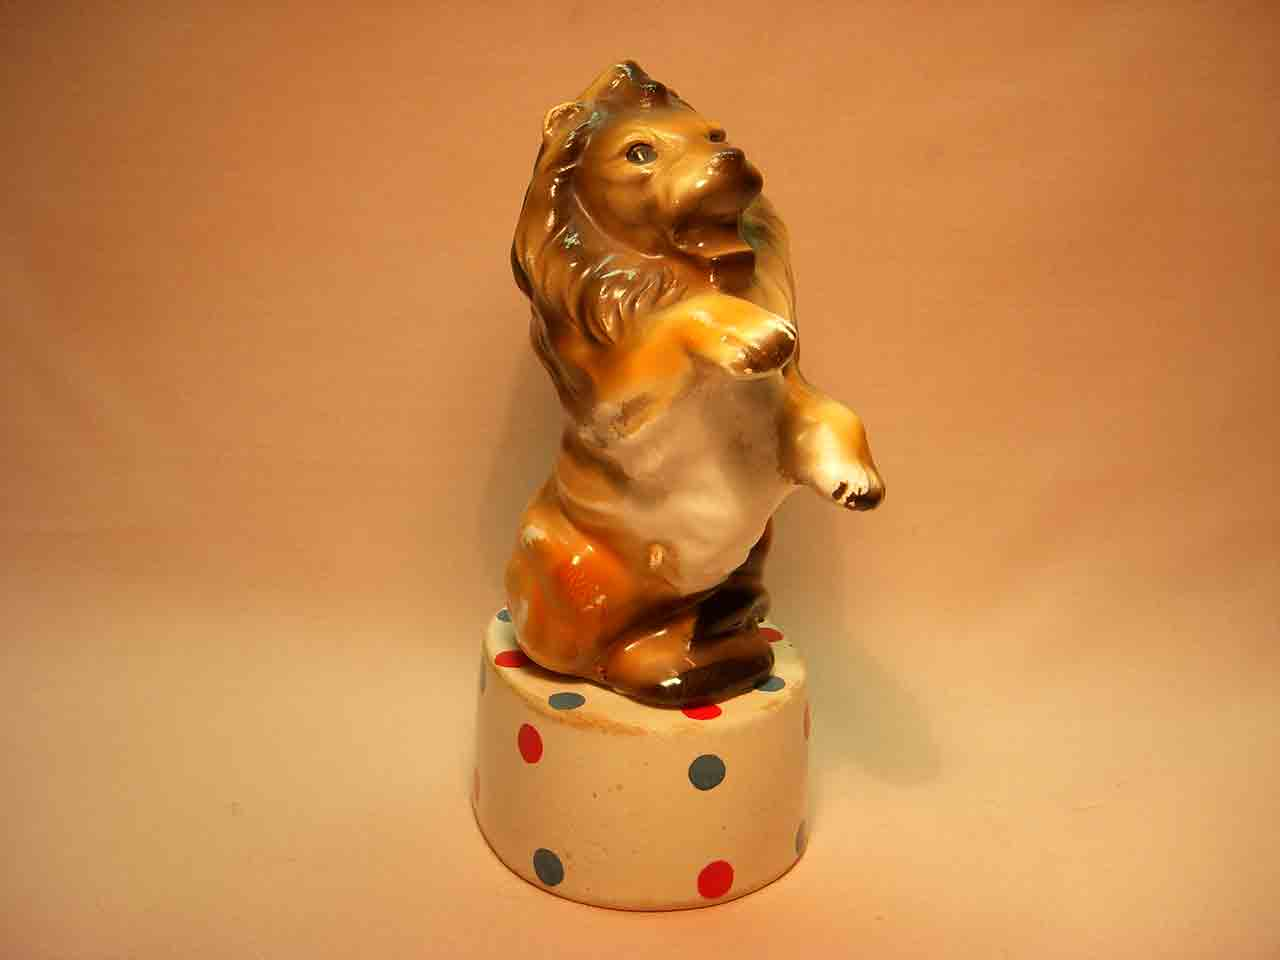 Stacker circus lion on podium salt and pepper shaker